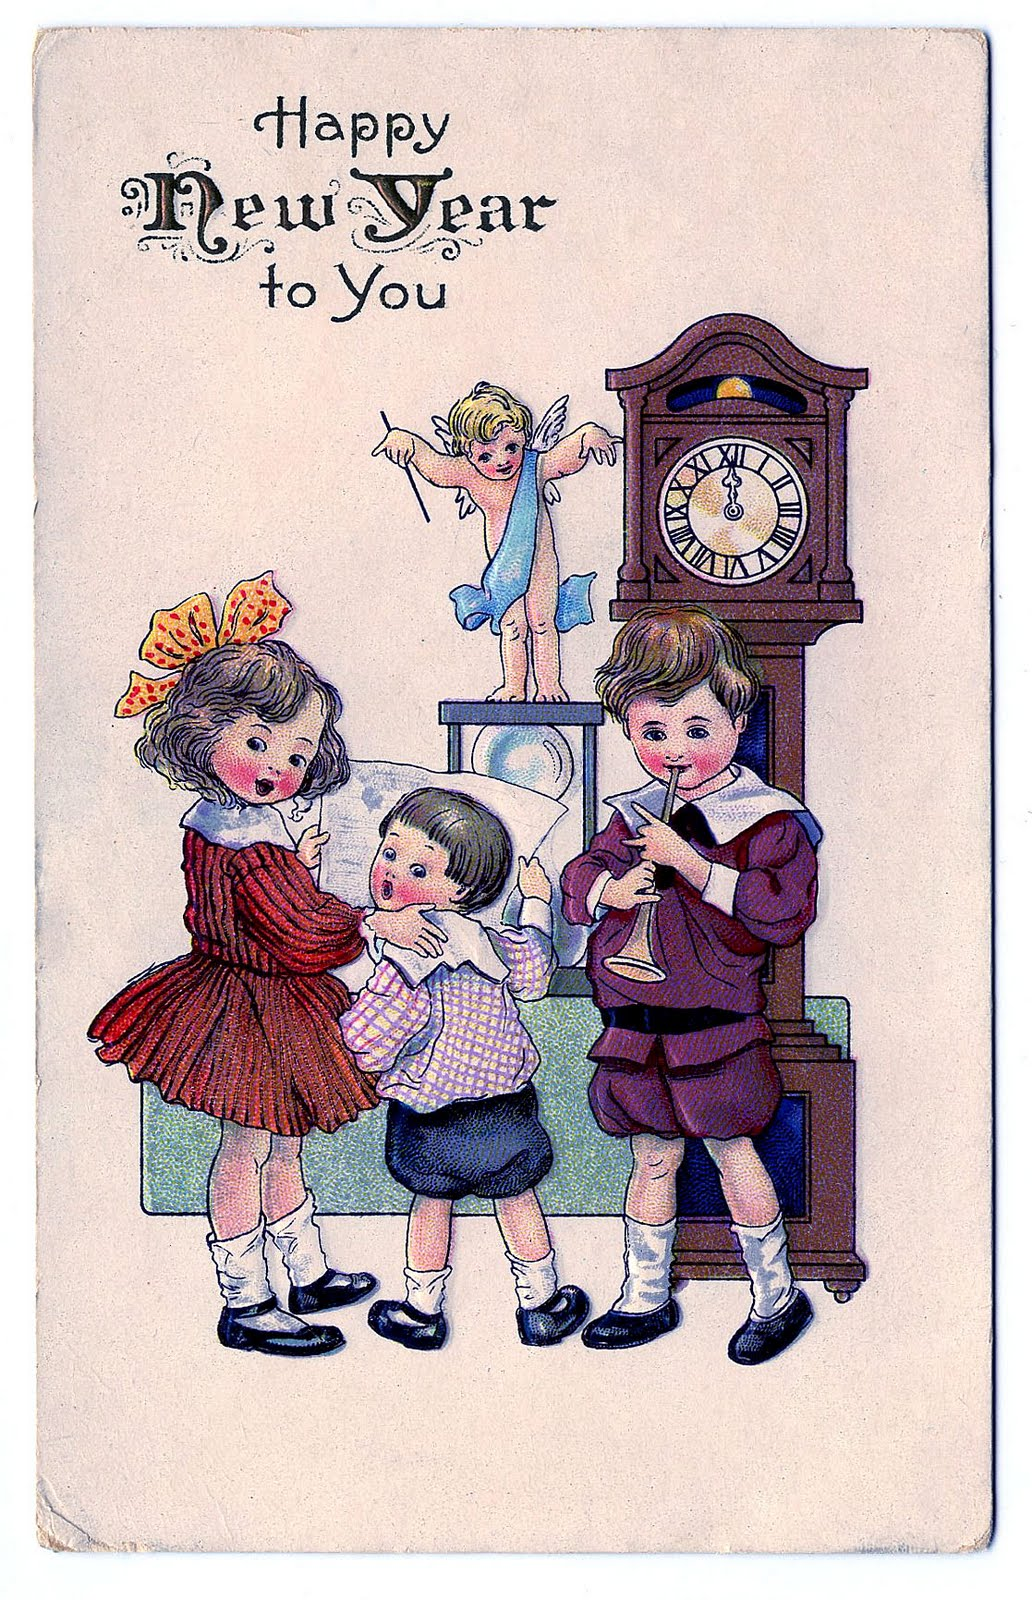 Vintage New Year Clip Art - Children with Cupid - The ...